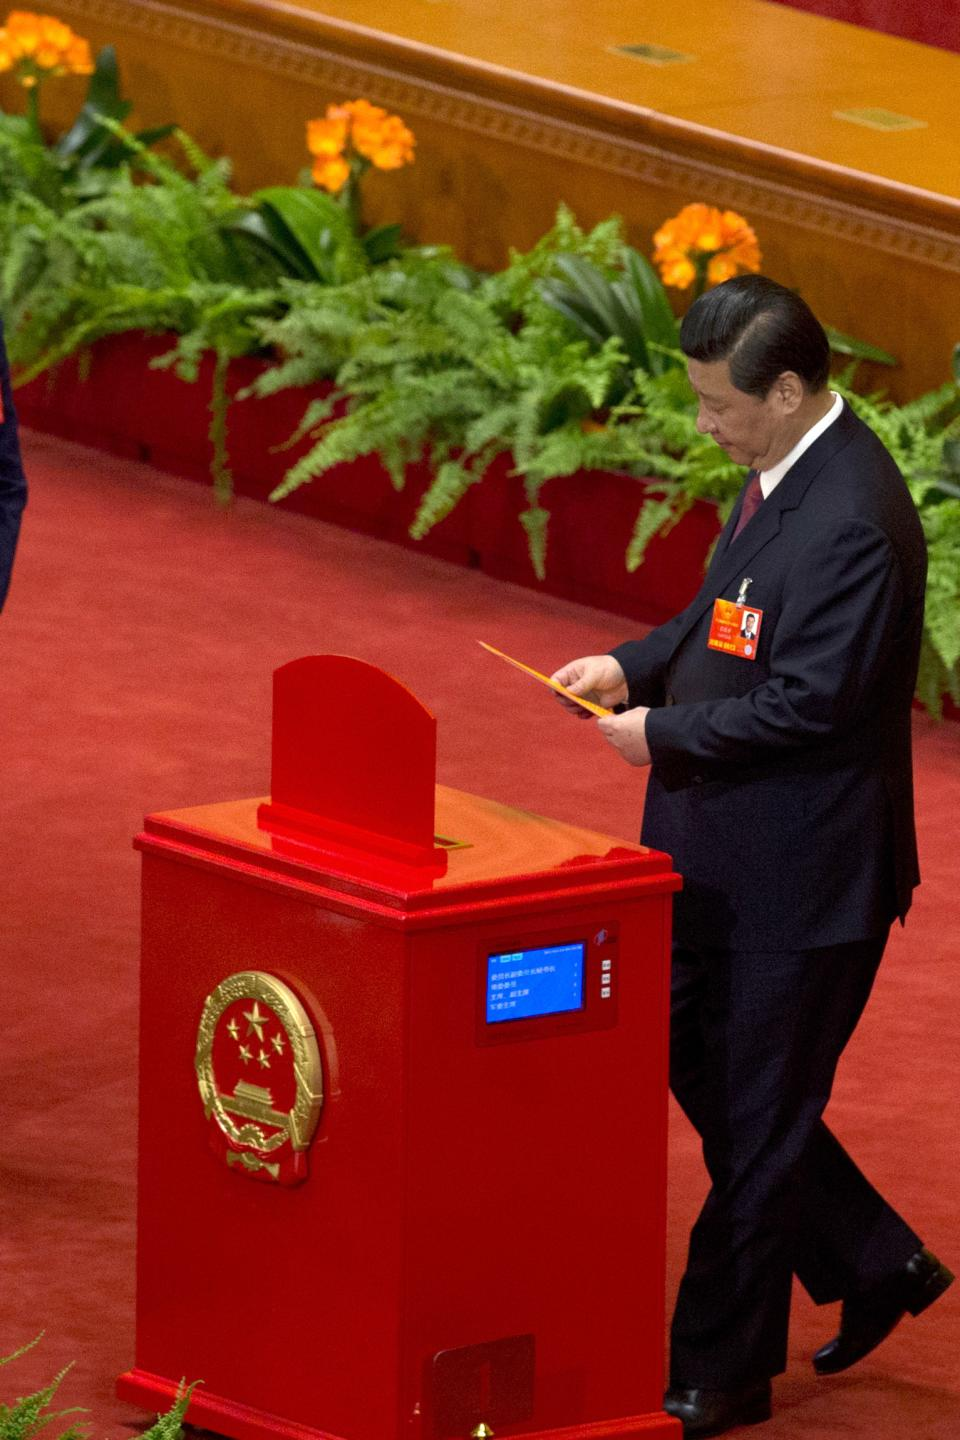 Chinese Communist Party chief and incoming-President Xi Jinping prepares to cast his votes at a plenary session of the National People's Congress where delegates are expected to elect Xi officially as president at the Great Hall of the People in Beijing Thursday, March 14, 2013. (AP Photo/Ng Han Guan)